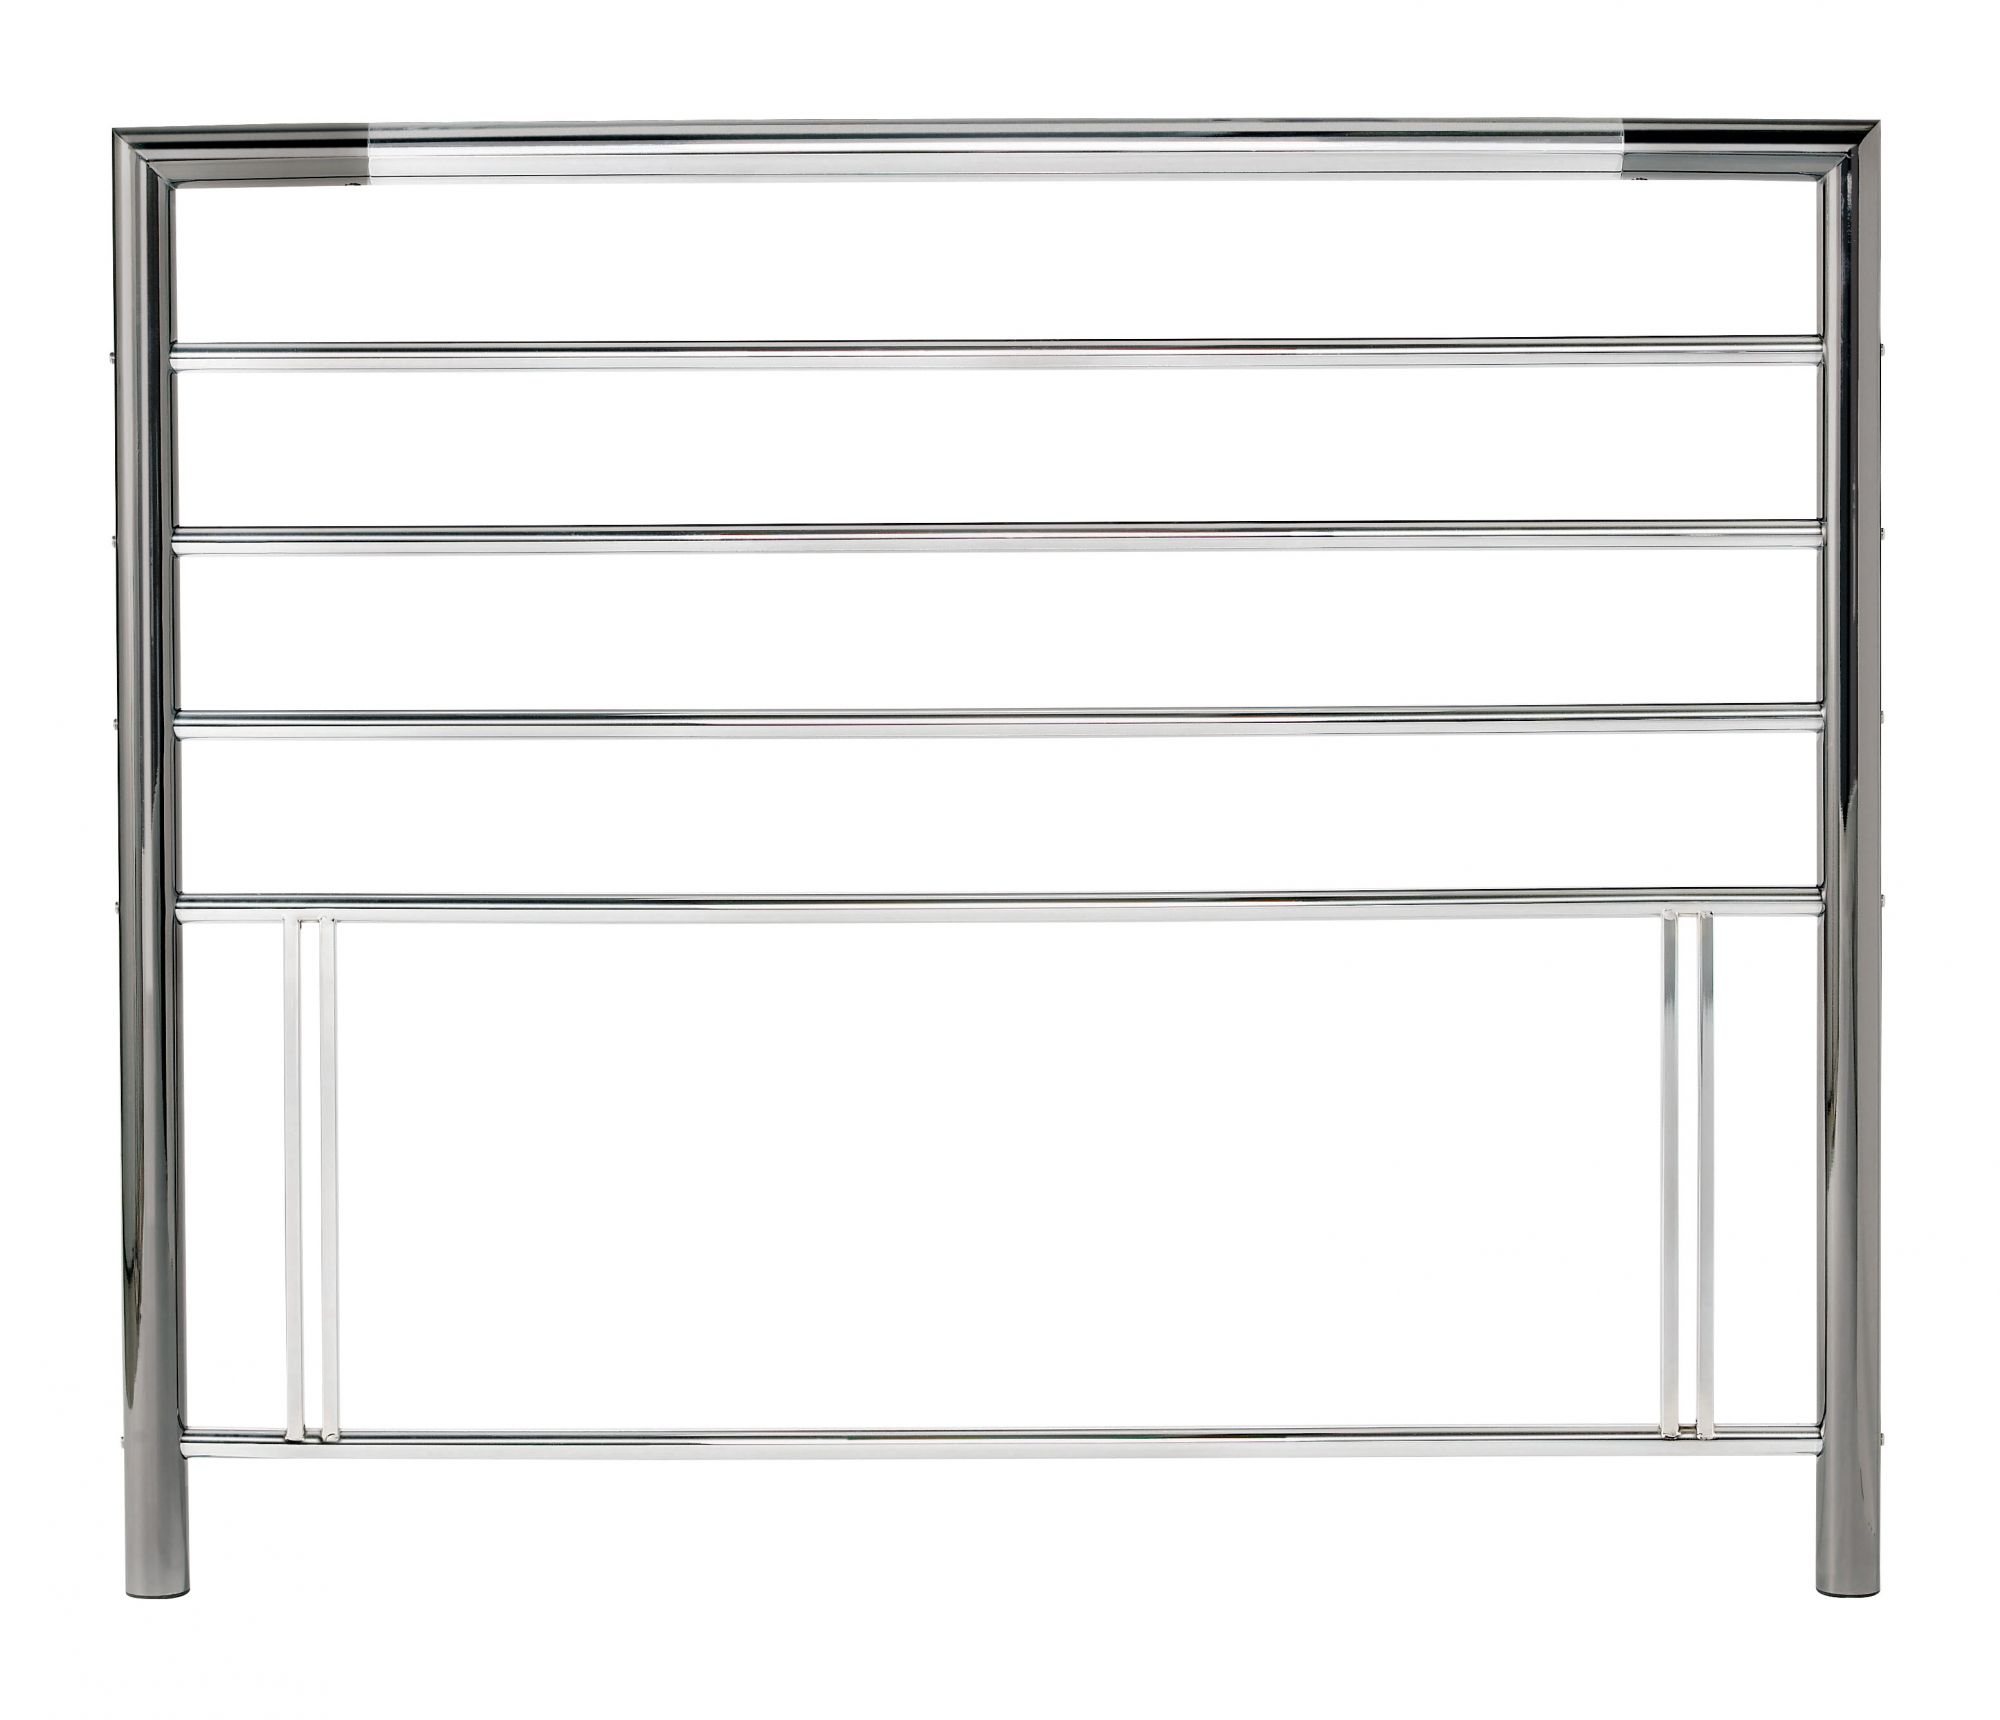 Photo of Bentley designs urban 5ft king size nickel chrome metal headboard